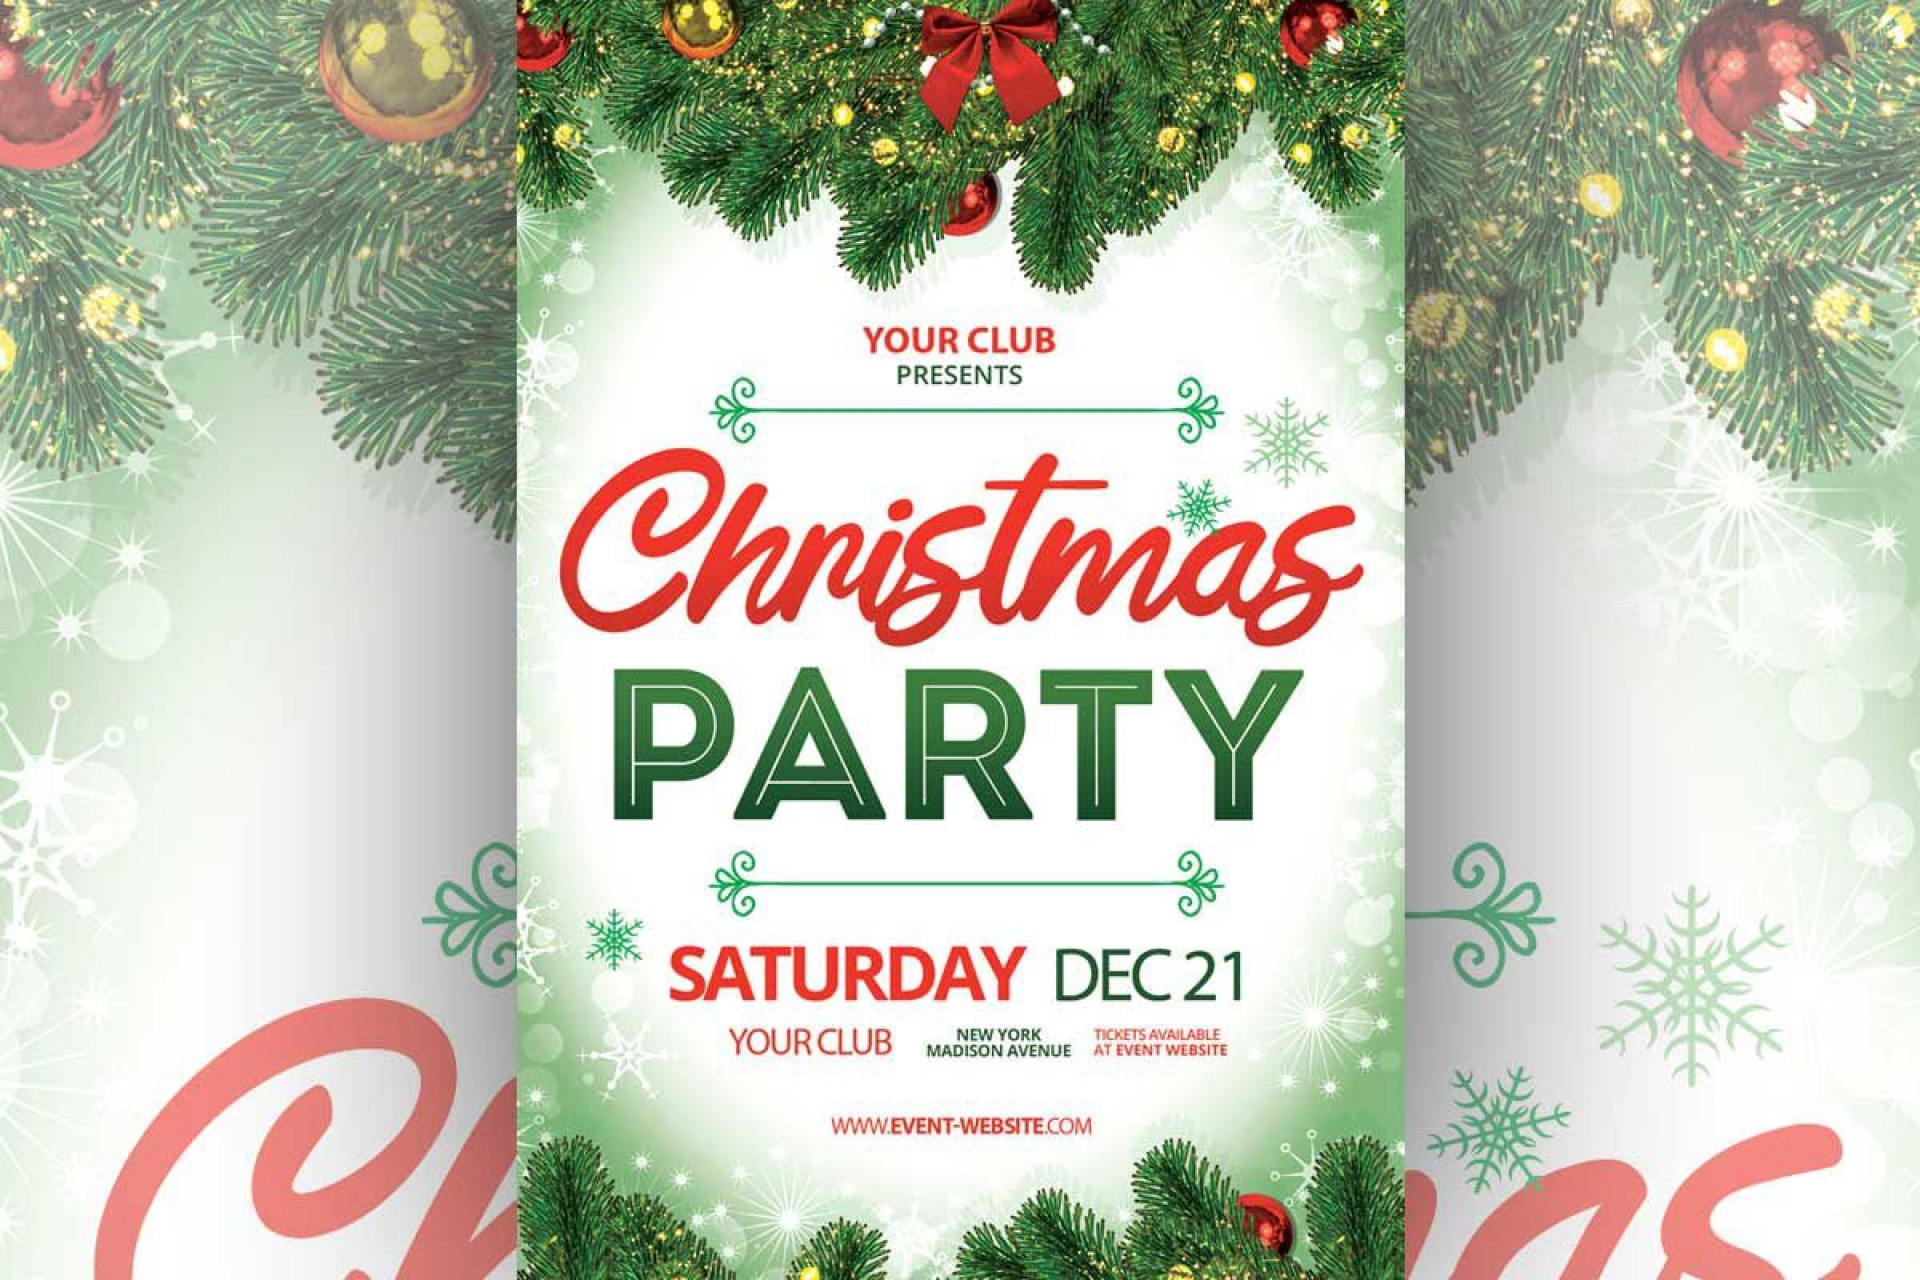 006 Fantastic Free Christma Flyer Template Concept  Templates Holiday Invitation Microsoft Word Psd1920